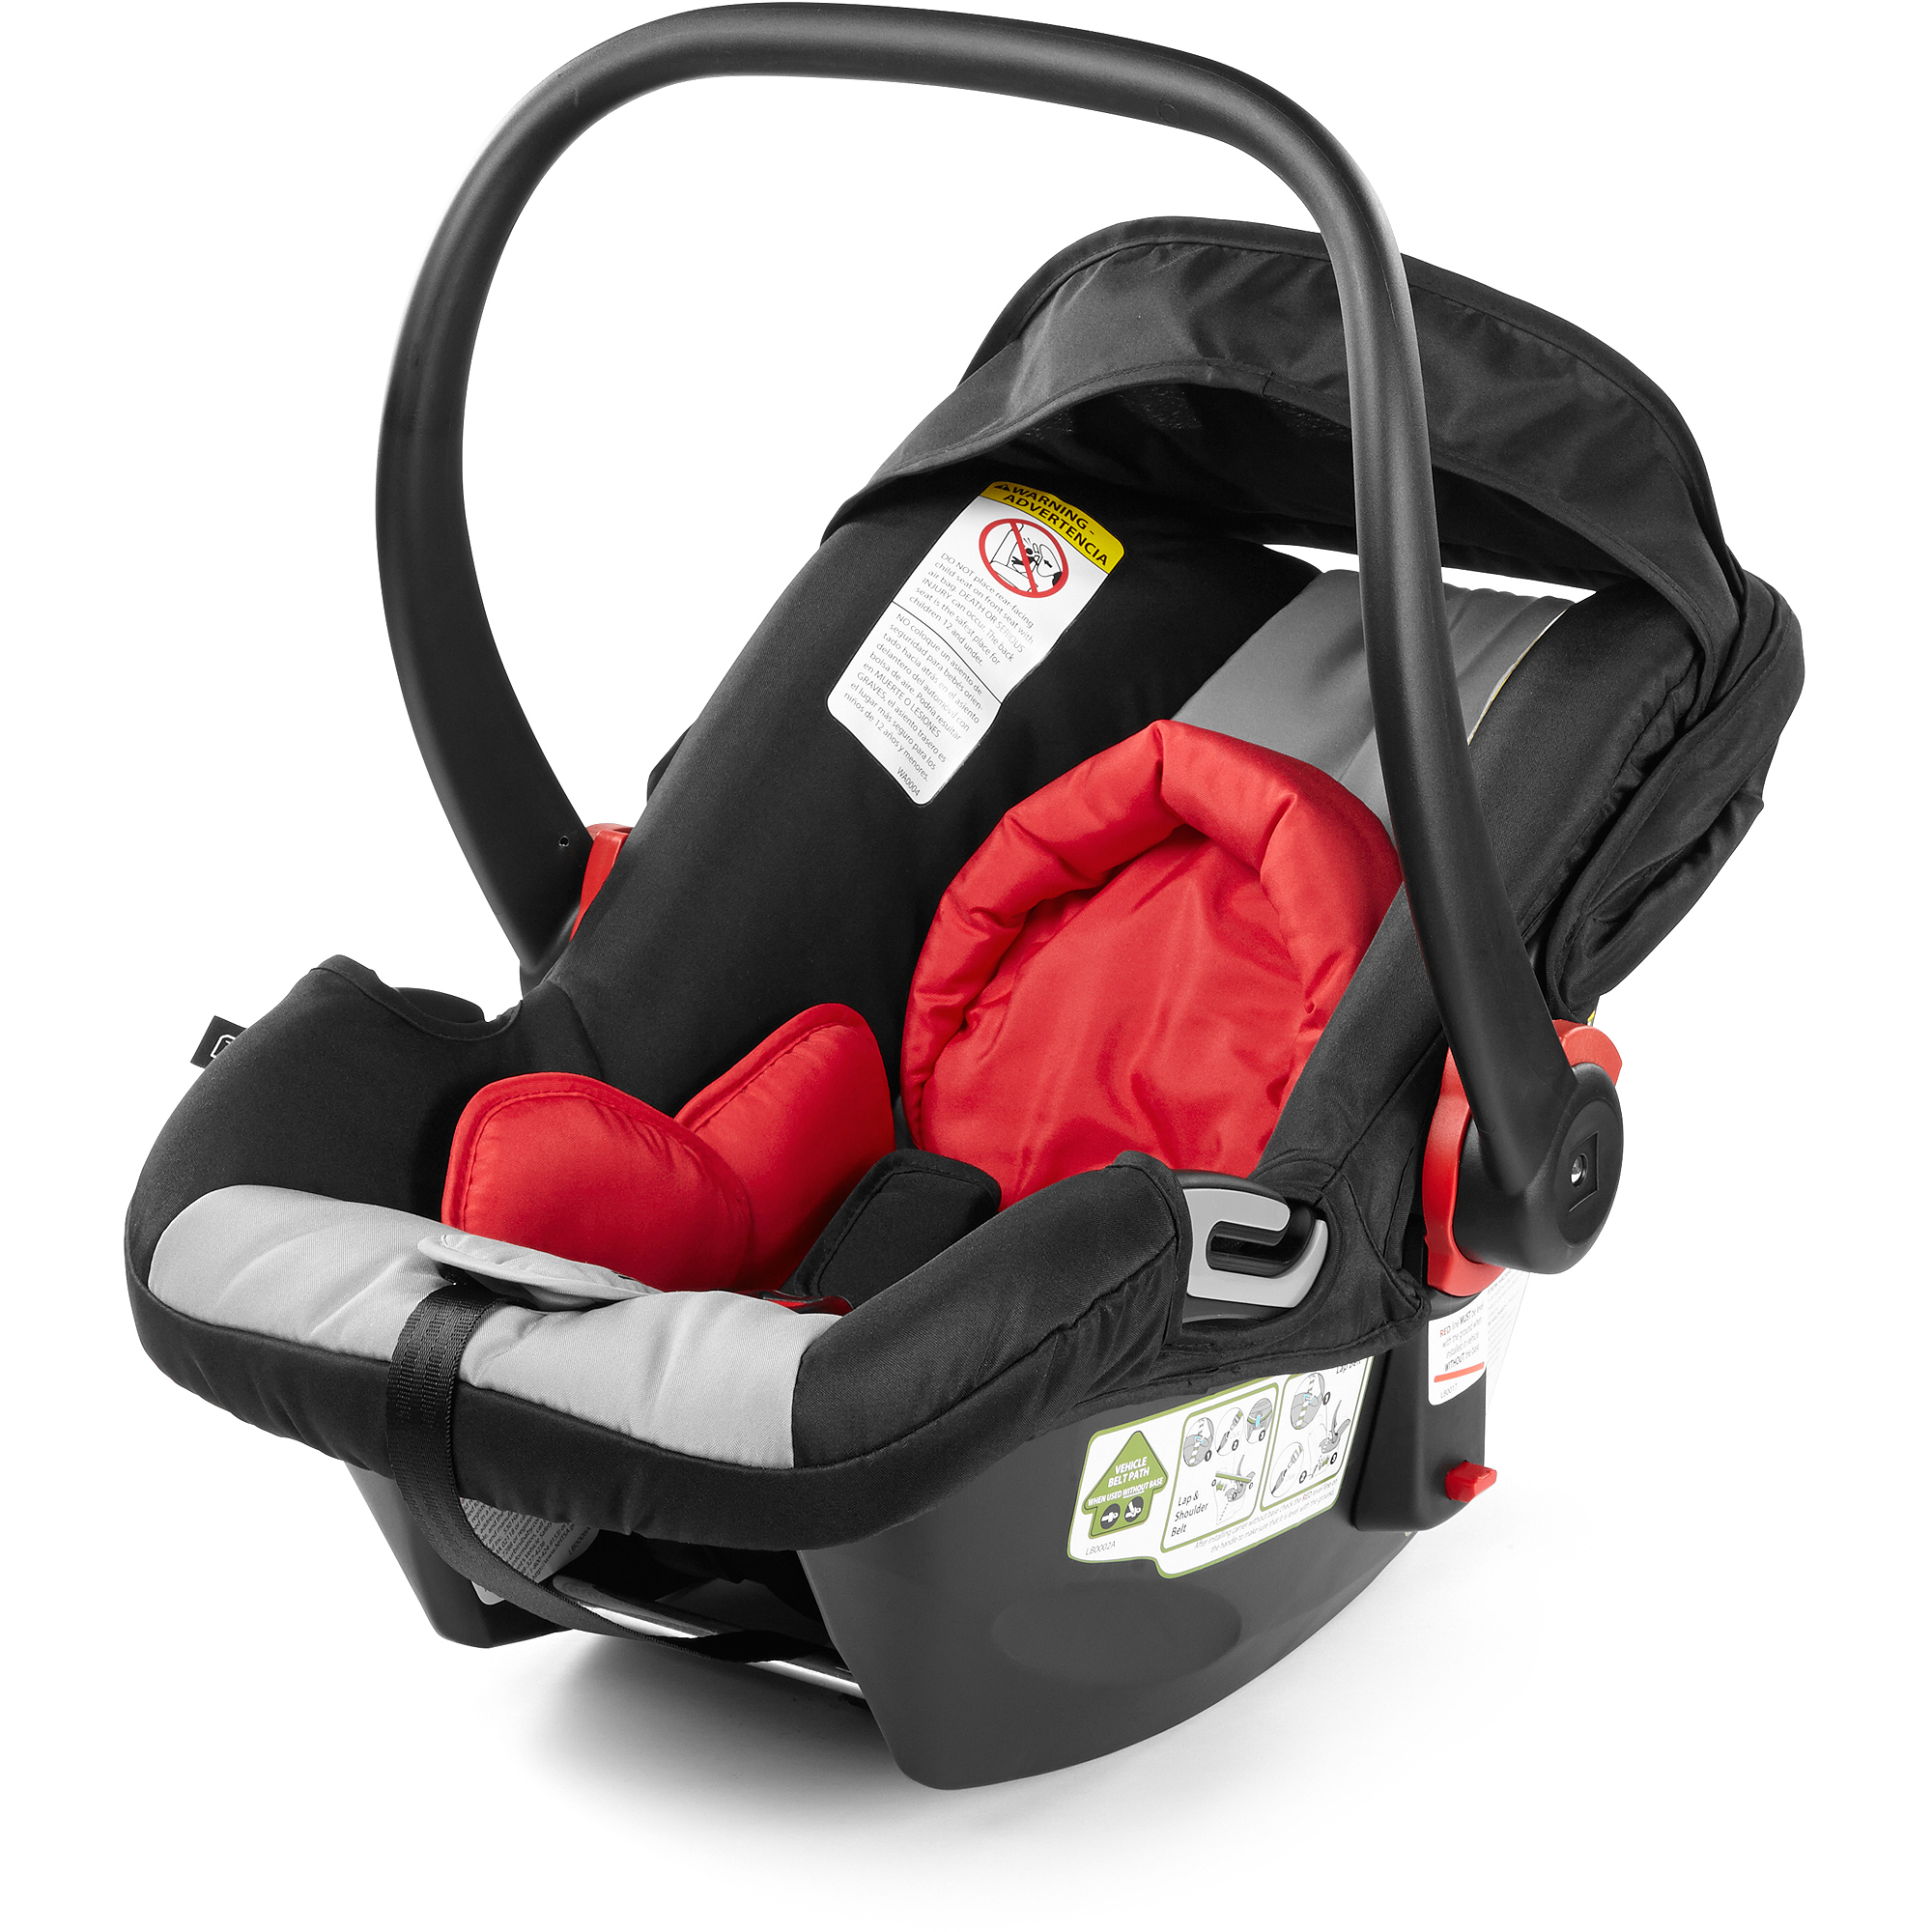 Urbini Petal Infant Car Seat - Walmart.com